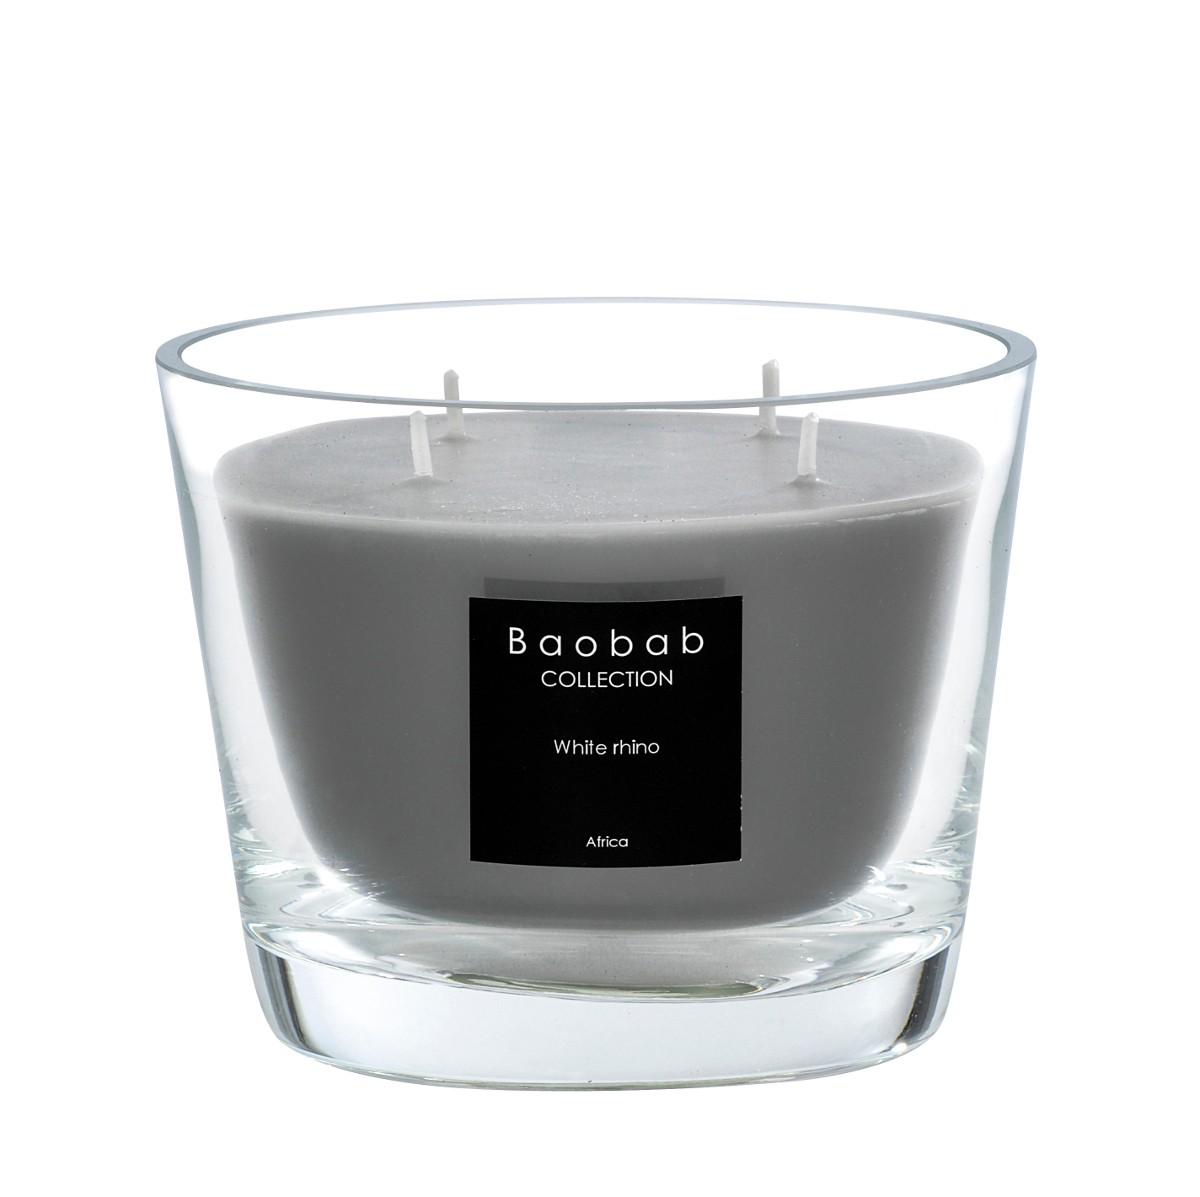 Bougie Baobab Paris Bougie White Rhino De Baobab Collection 4 Tailles